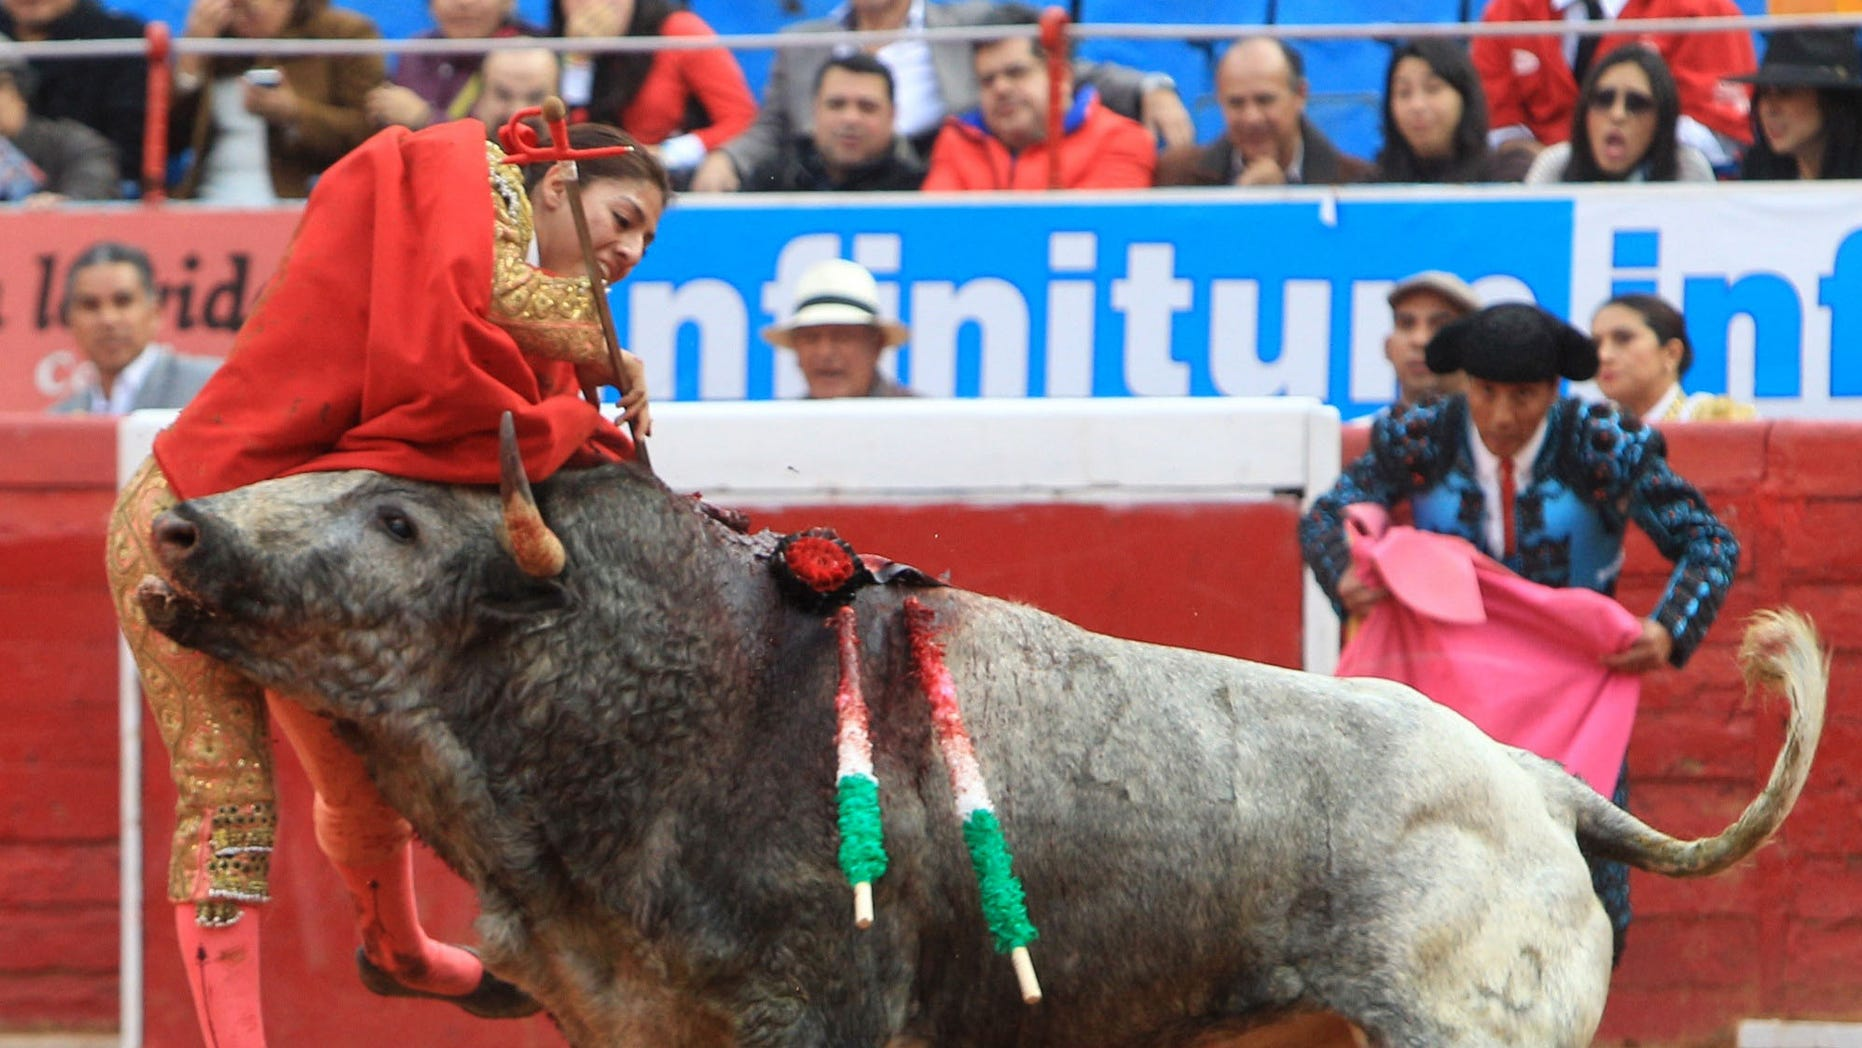 """In this Dec. 28, 2014 photo, Karla de los Angeles, one of Mexico's few female bullfighters, is gored by a bull during a bullfight in Mexico City. The 26-year-old bullfighter who suffered a pair of gashes to the thigh and buttock when she was gored twice by the bull says she is determined to return to the ring by mid-January, two days after she and several others were gored by what she described as a """"very smart"""" bull. (AP Photo/Gabino Acevedo, Cuartoscuro.com) MEXICO OUT - NO PUBLICAR EN MEXICO - MANDATORY CREDIT - CREDITO OBLIGATORIO"""